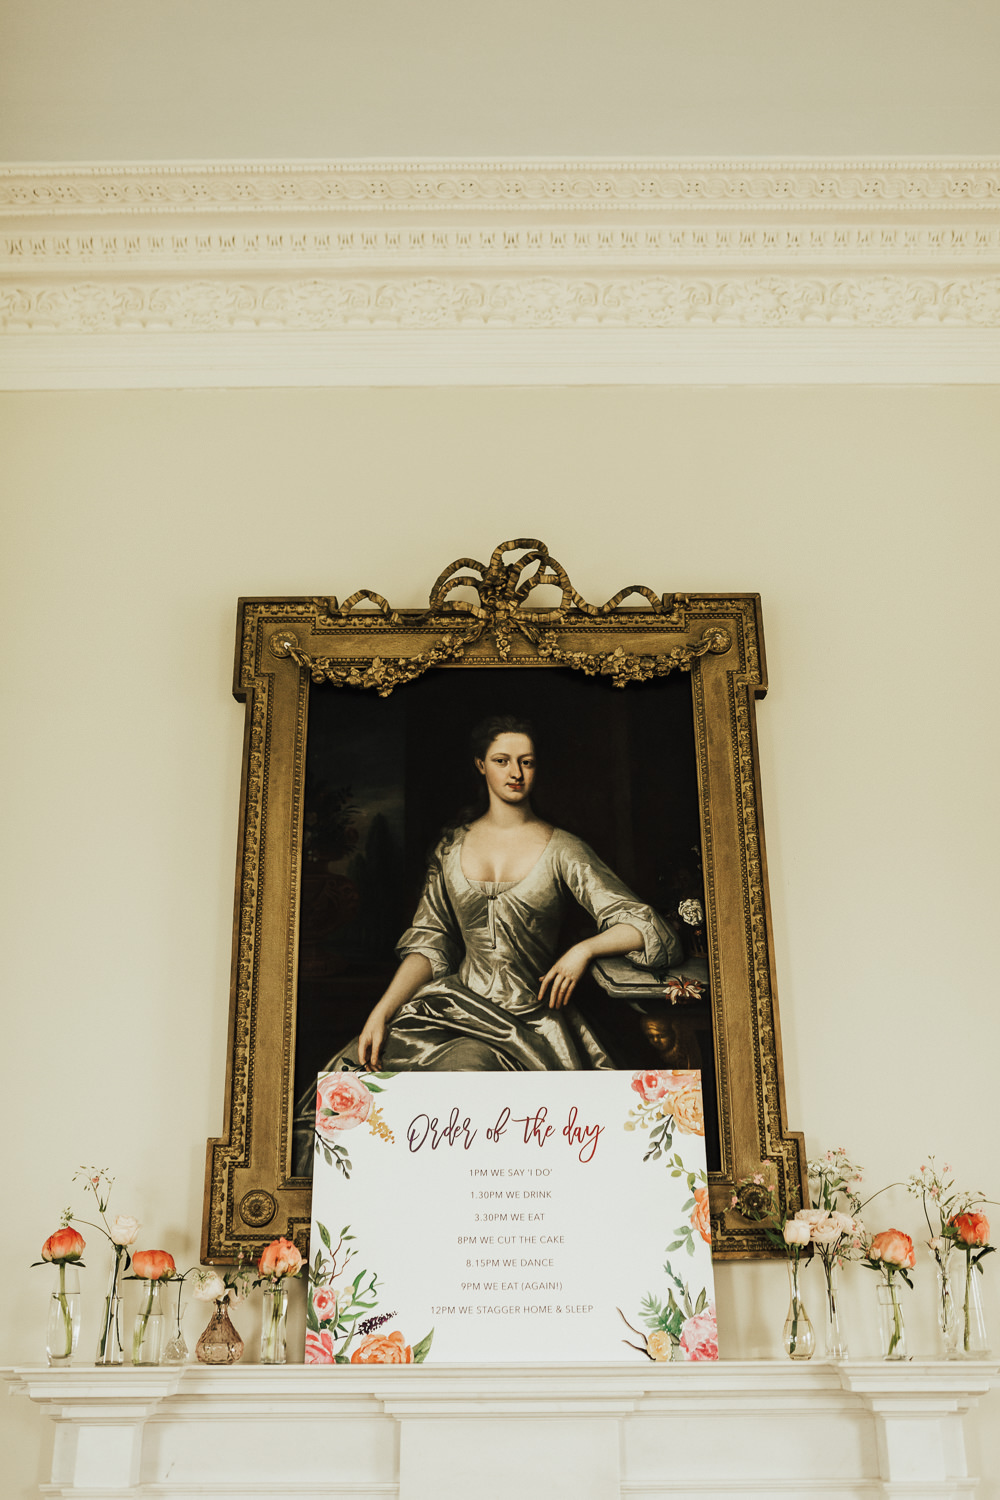 Order of the Day Sign Signage Coral Floral Flowers Fireplace Stubton Hall Wedding Darina Stoda Photography